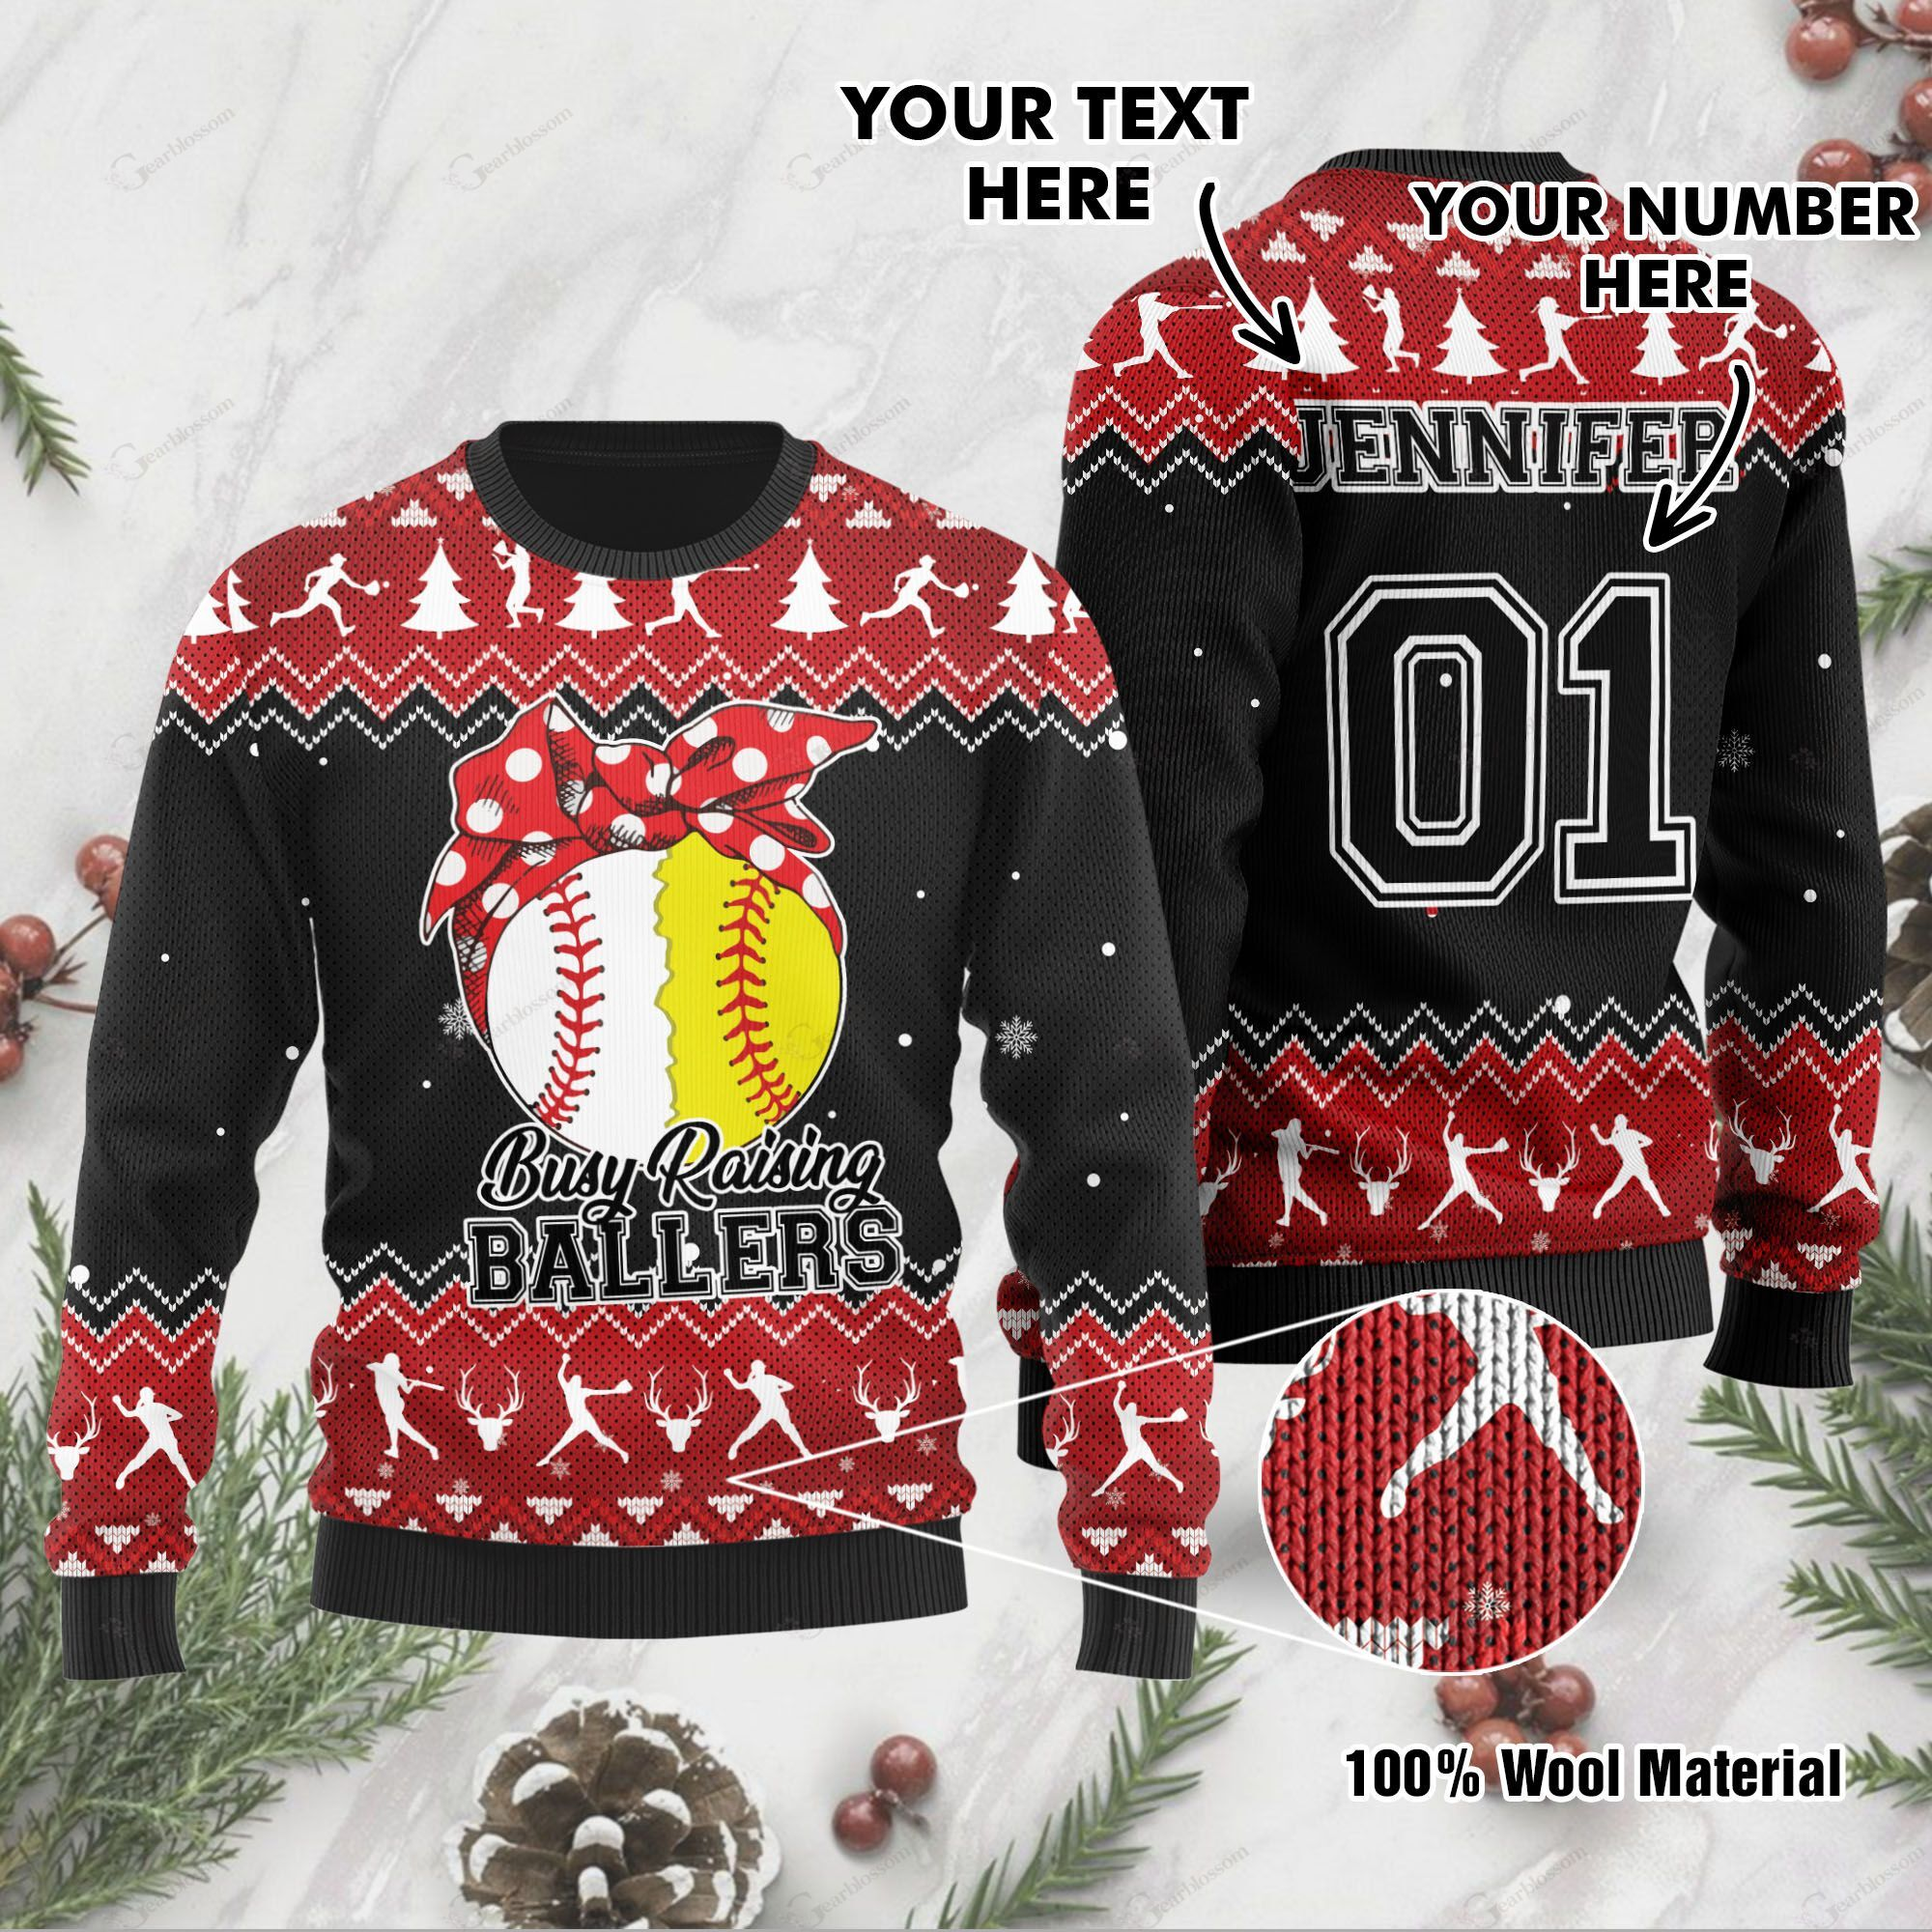 Busy Raising Ballers Baseball And Softball Custom Name And Number Ugly Christmas Wool Sweater For Baseball And Softball Lovers And In Daily Life